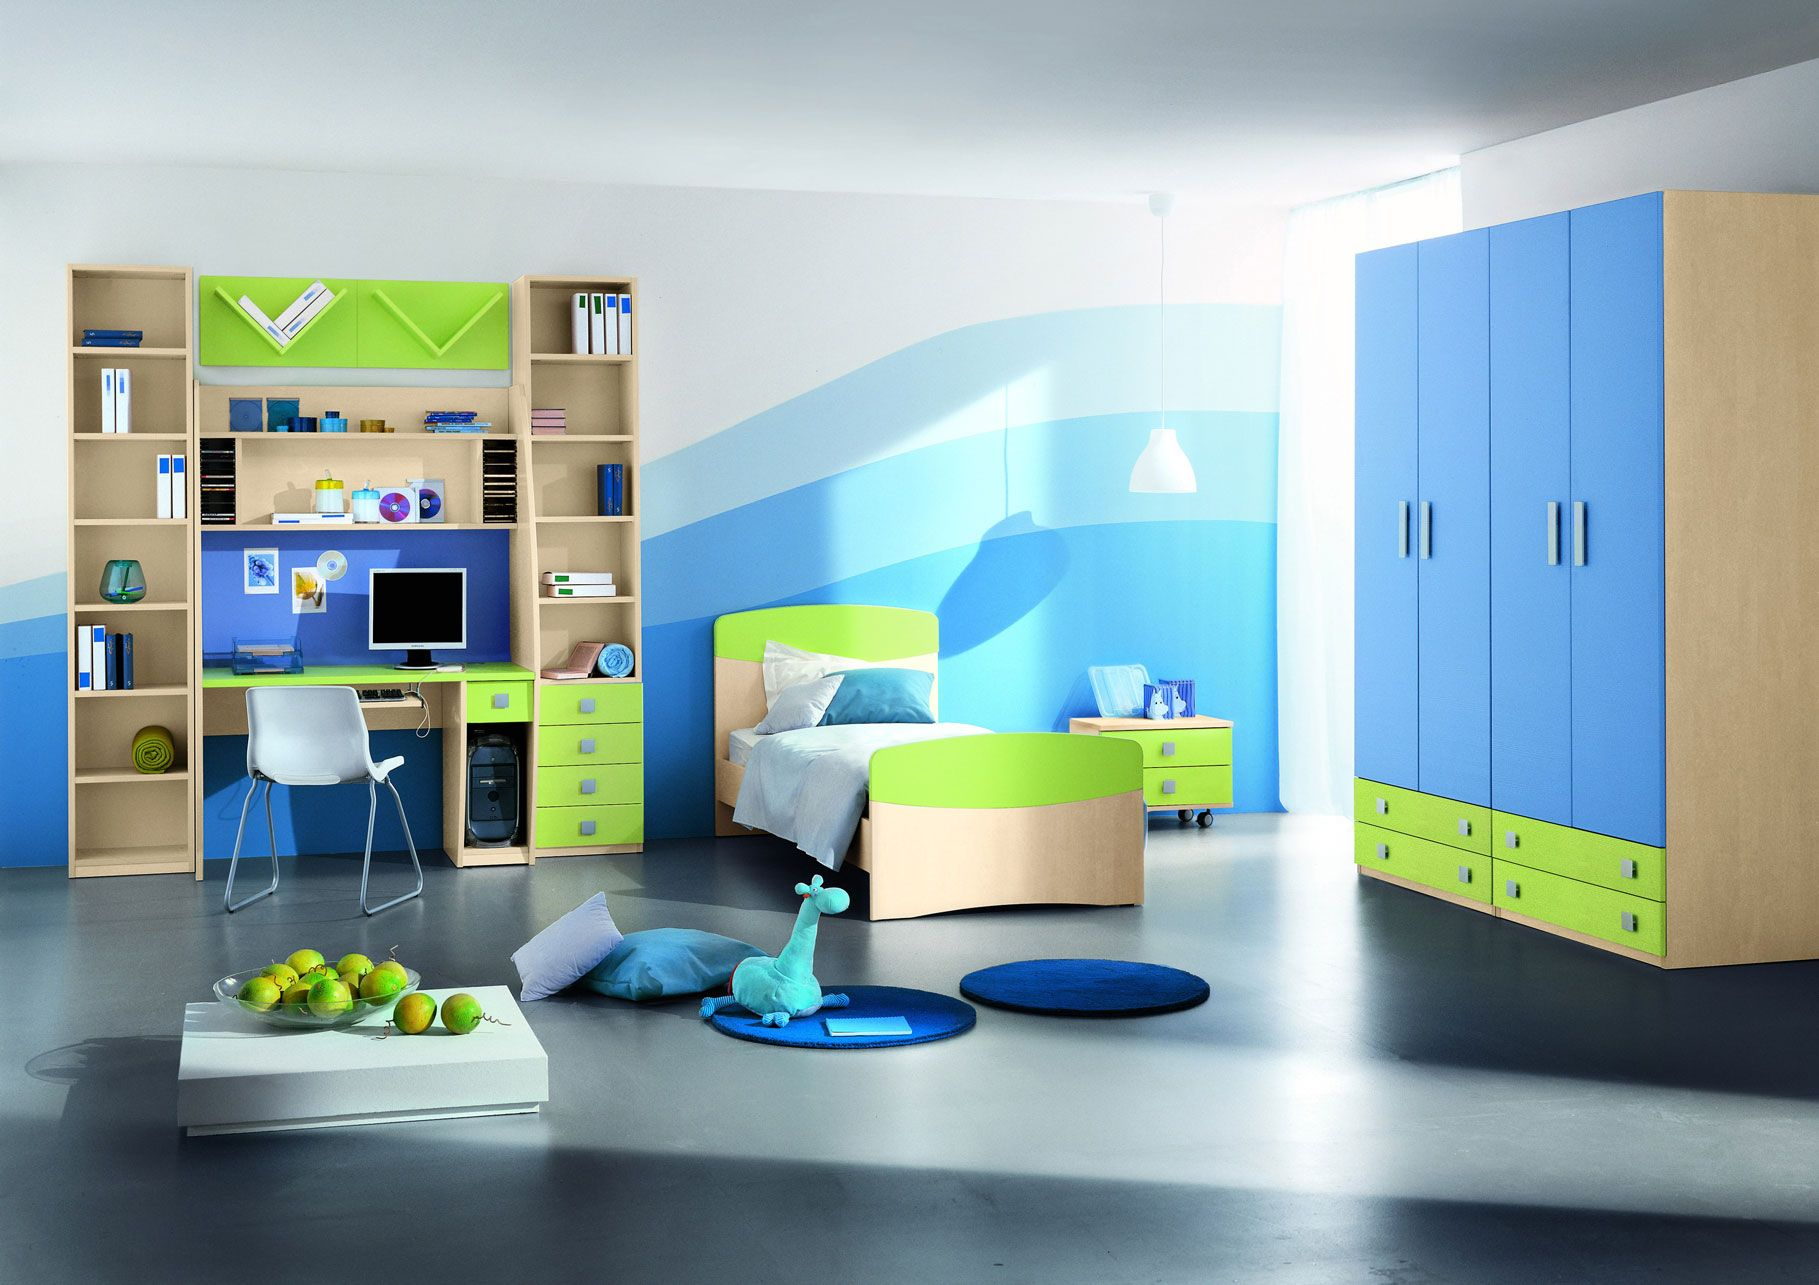 Bedroom colors blue and green - Catchy Kids Bedroom Design Idea With Cool Gradient Blue To White Wall Paint Color And Wooden